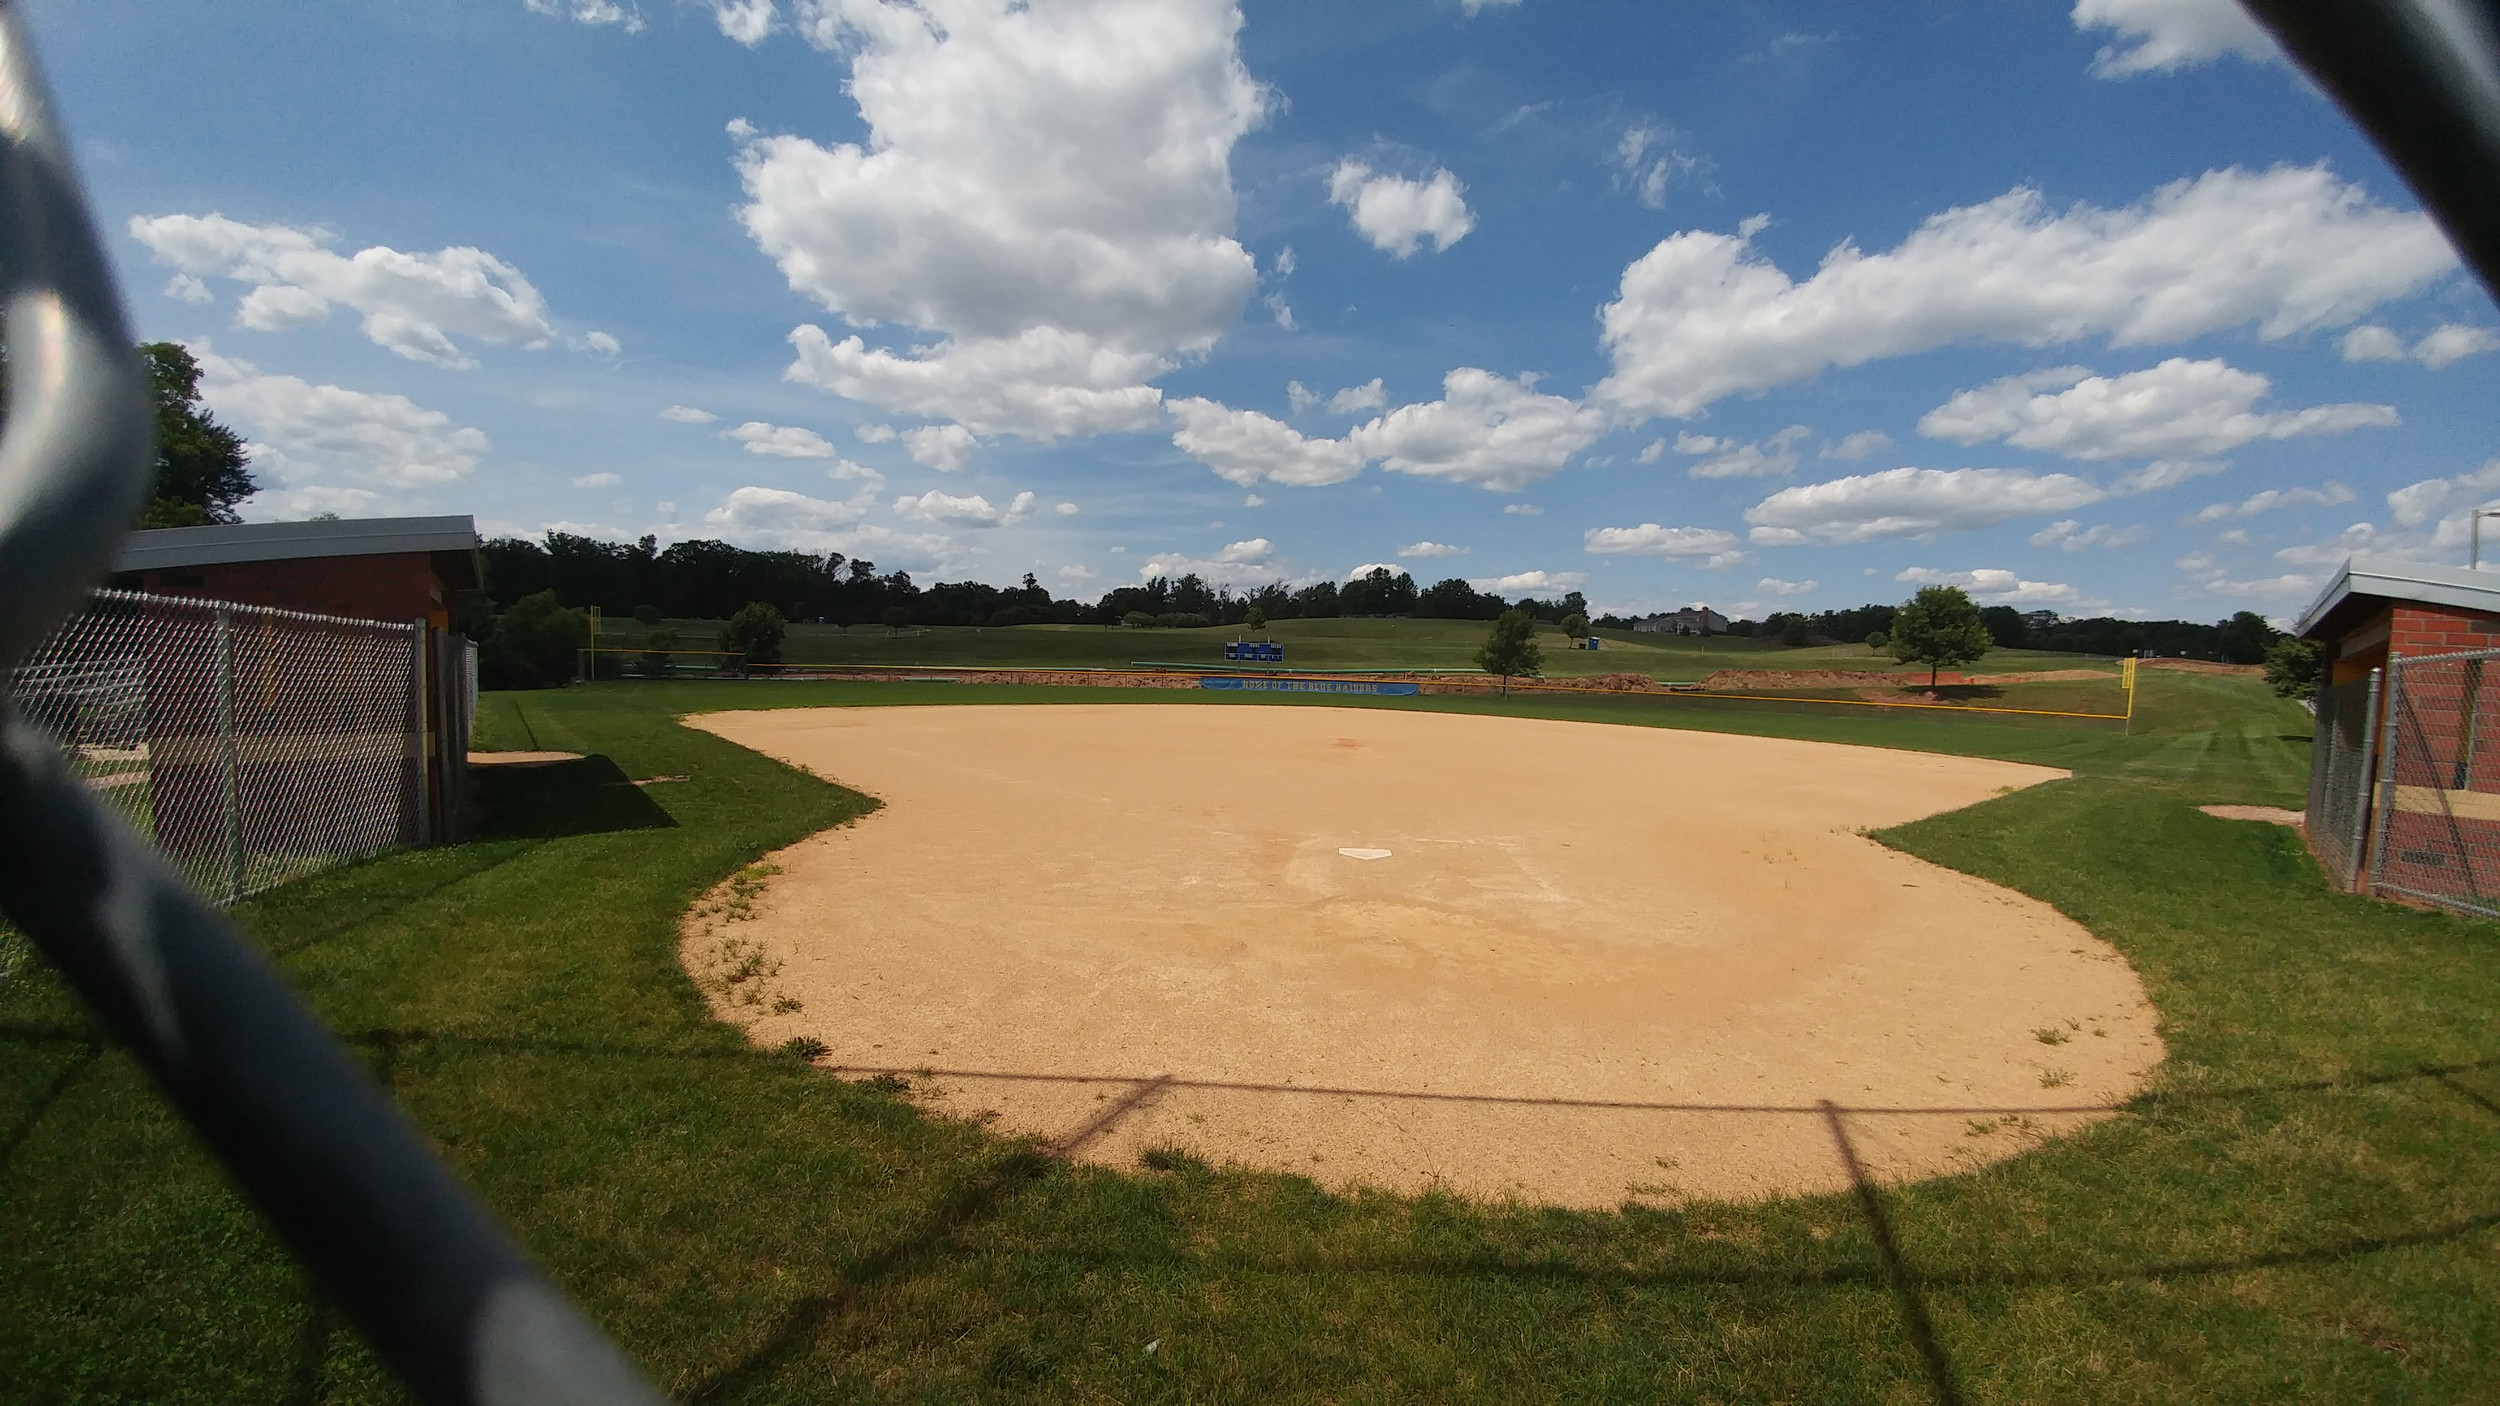 The softball field was constructed in 2007 as part of the middle school design project and became the primary facility about six years ago.